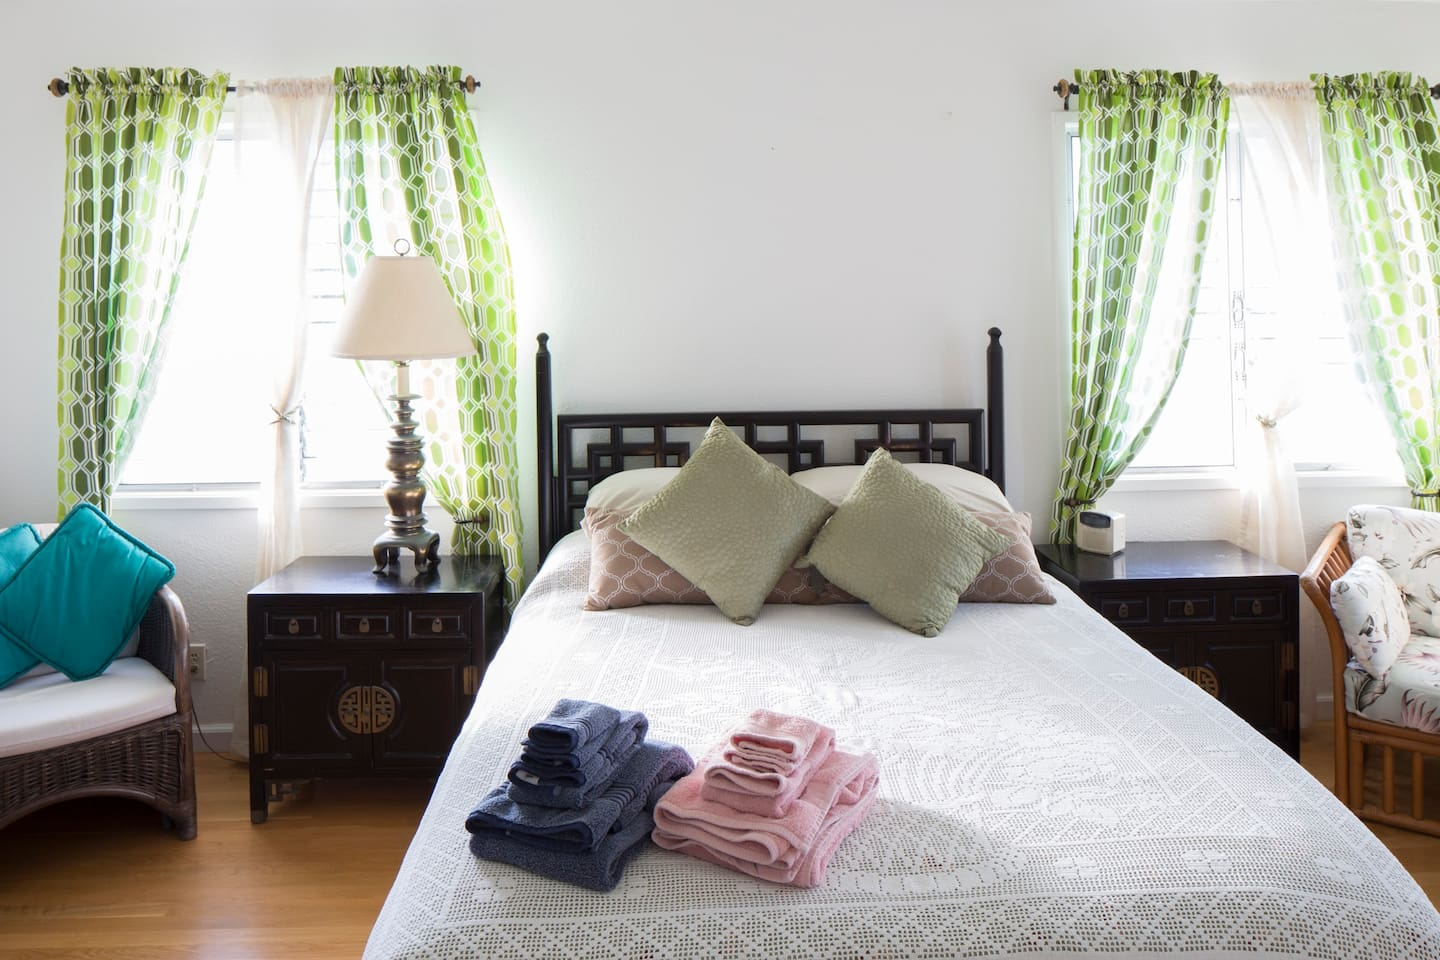 Spacious Master bedroom with a queen size bed and twin size bed